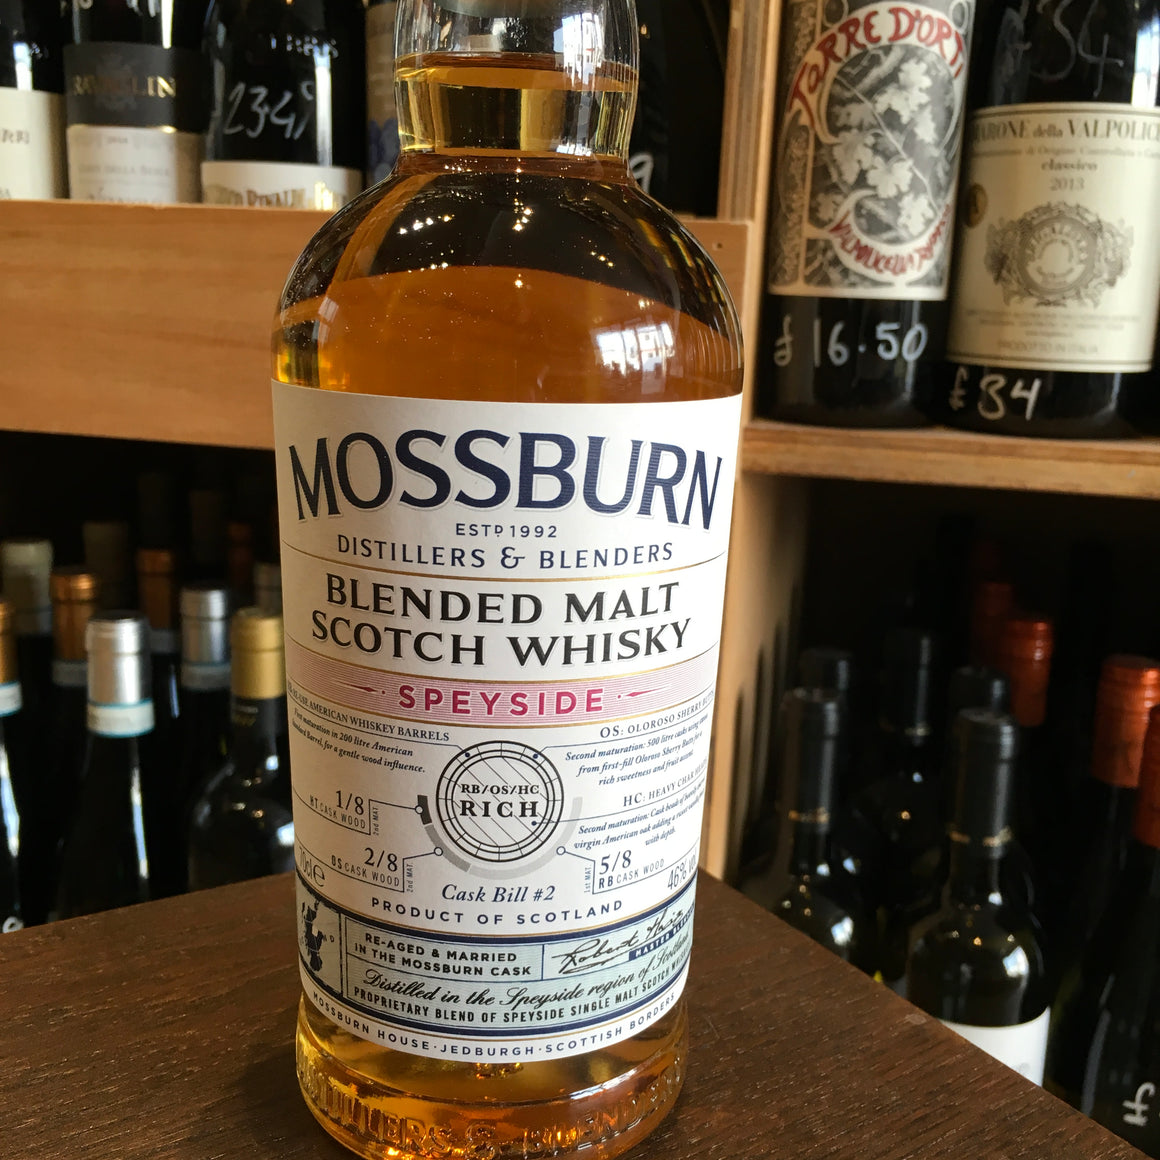 Mossburn Speyside Blended Malt Whisky 46% Abv - Butlers Wine Cellar Brighton